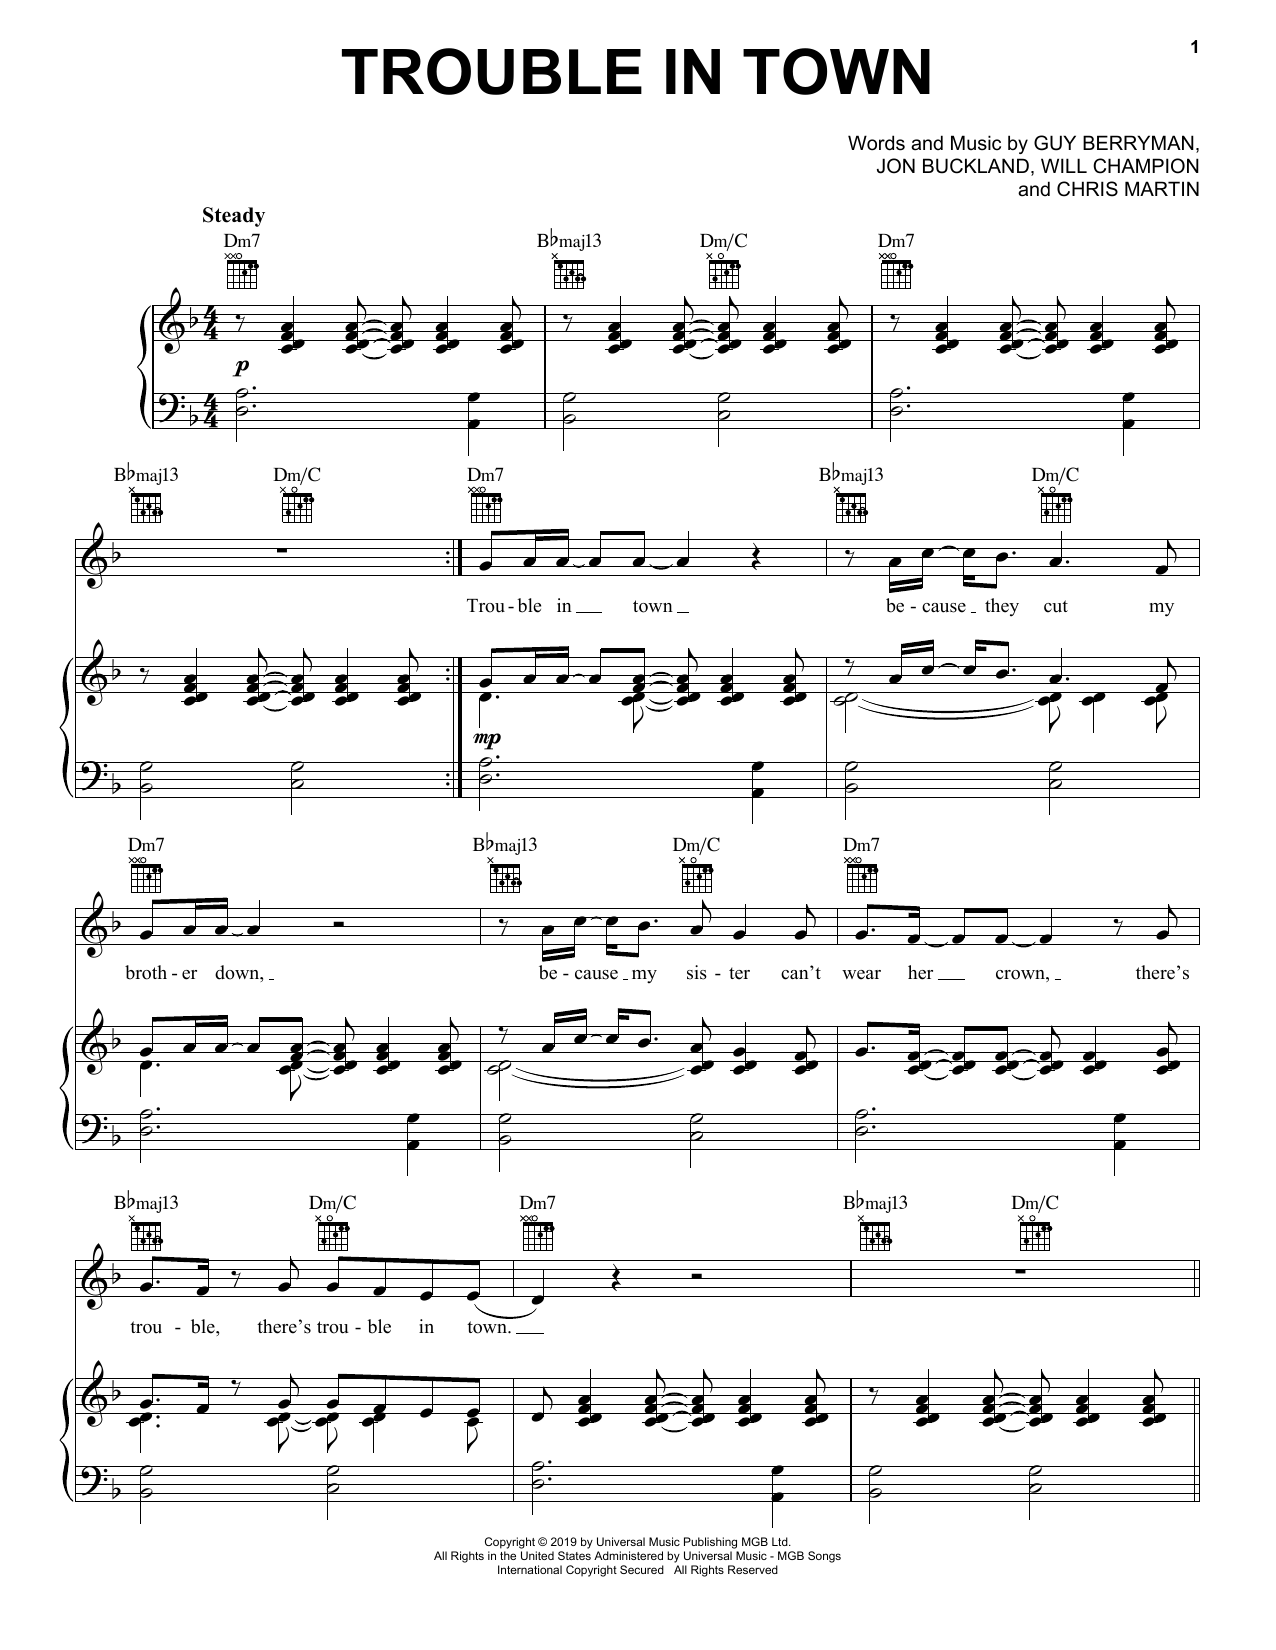 Coldplay Trouble In Town Sheet Music Notes, Chords   Download Printable  Piano, Vocal & Guitar Right Hand Melody PDF Score   SKU 15